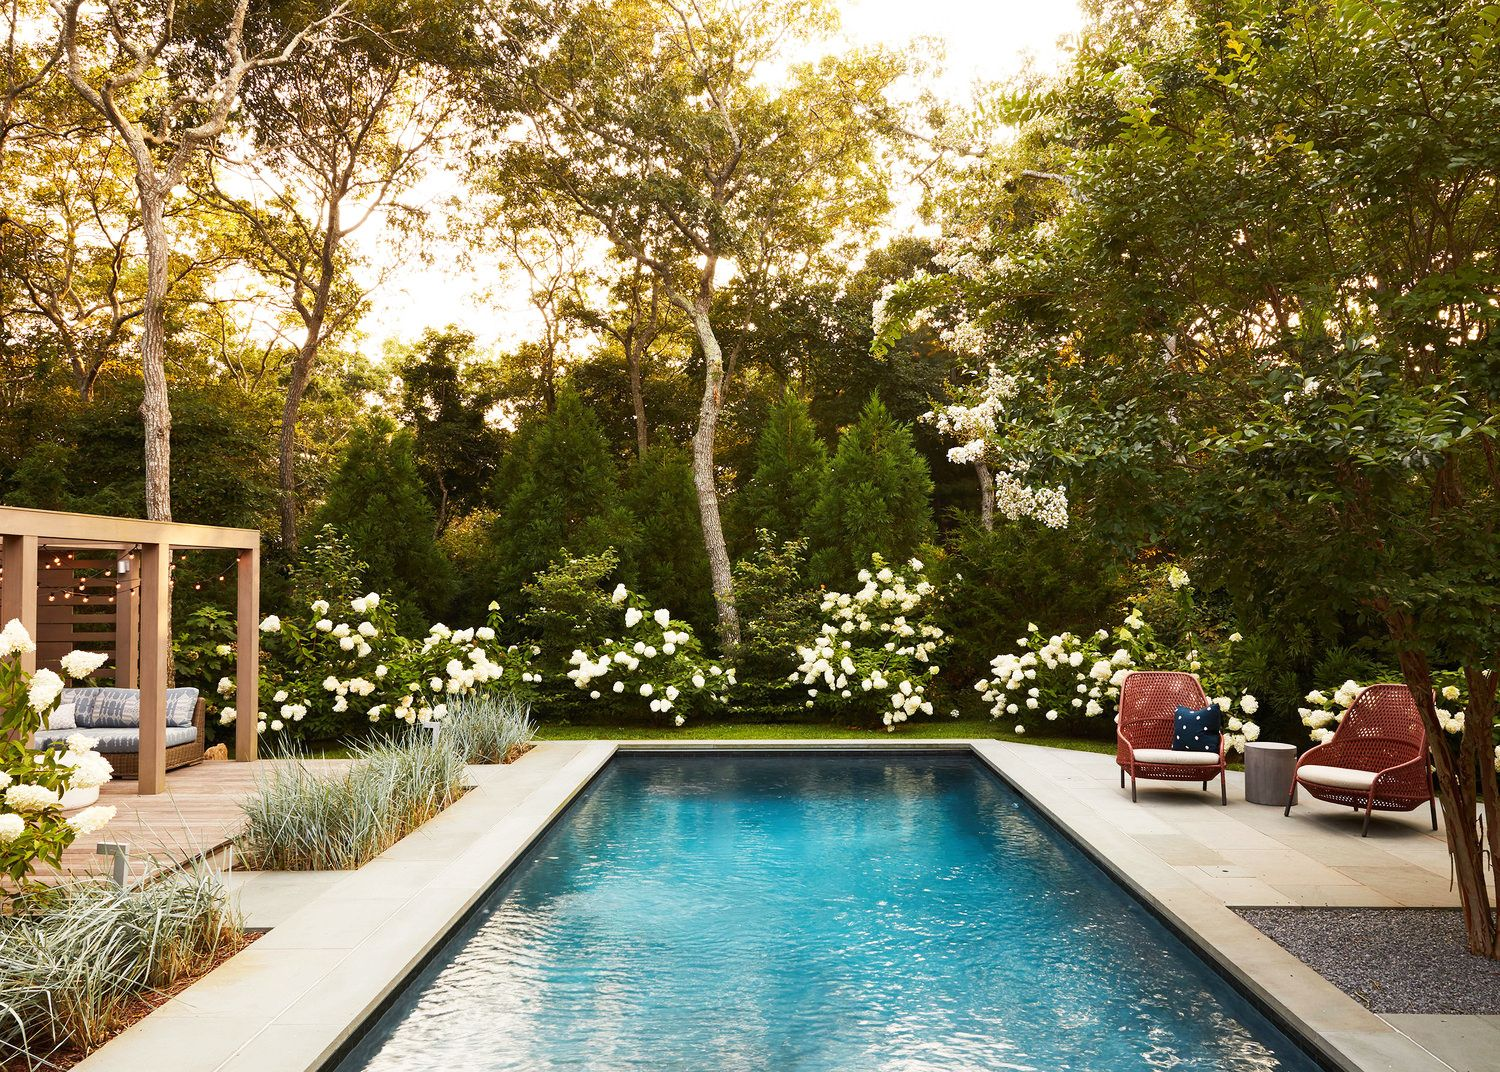 37 Backyard Ideas Thatu0027ll Transform Your Space Into Paradise